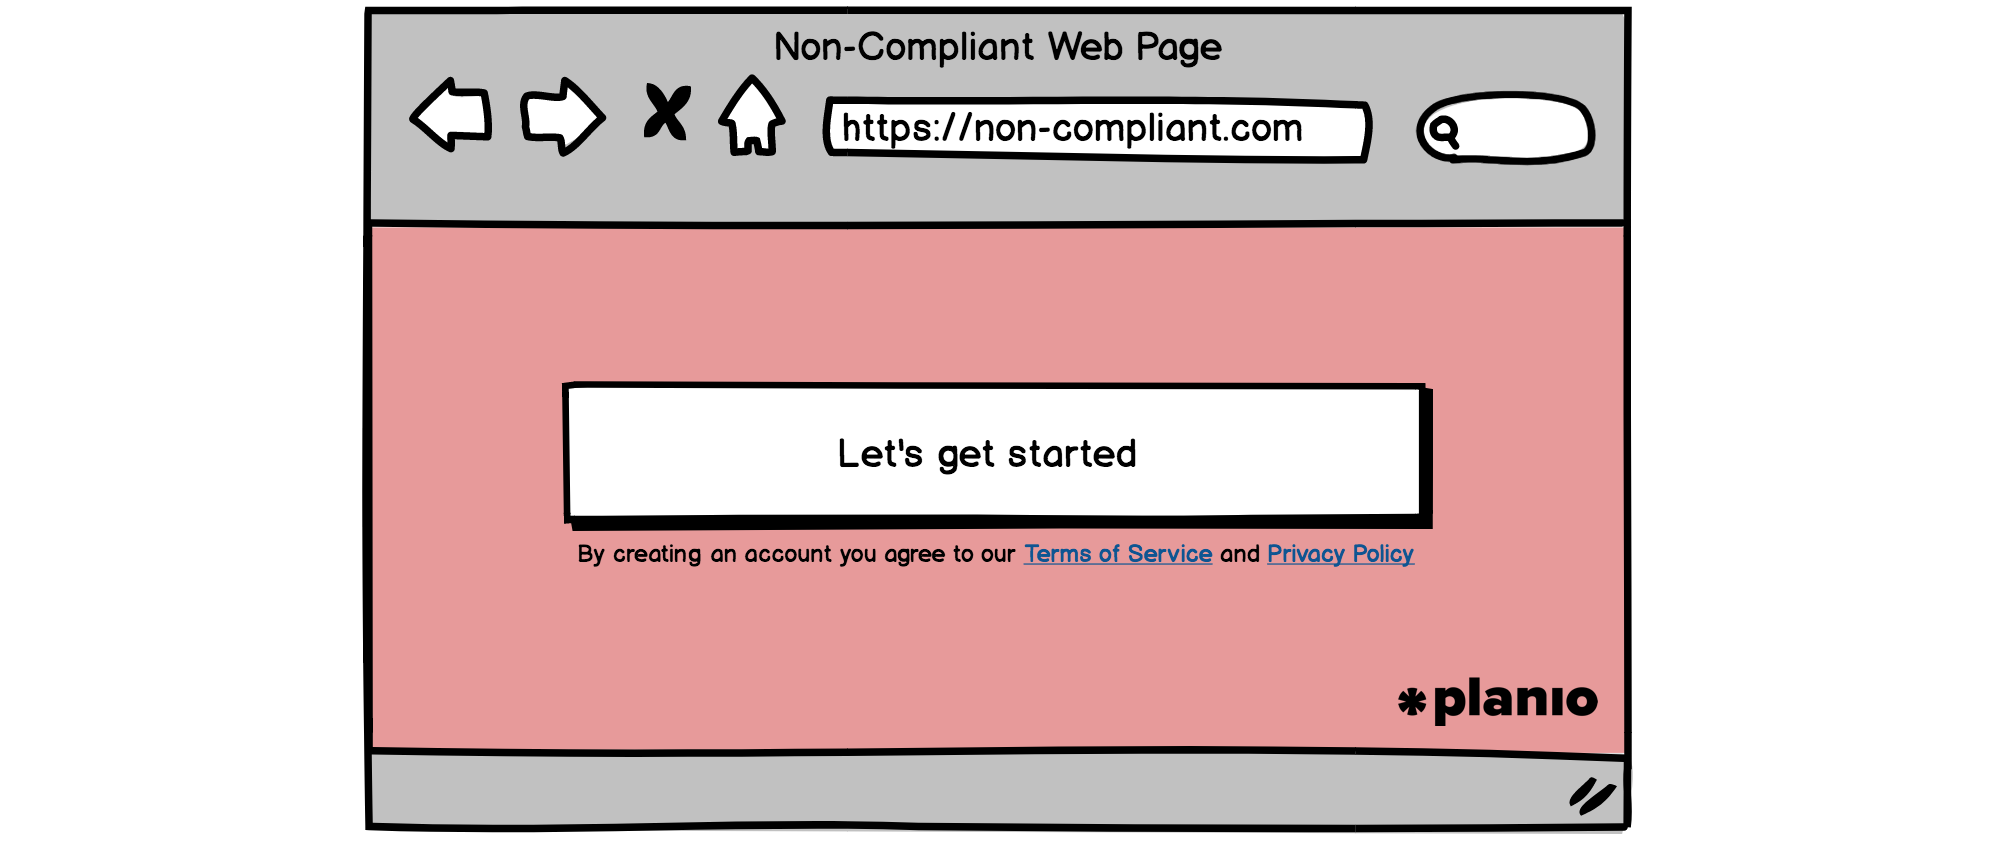 Non-compliant sign-up form